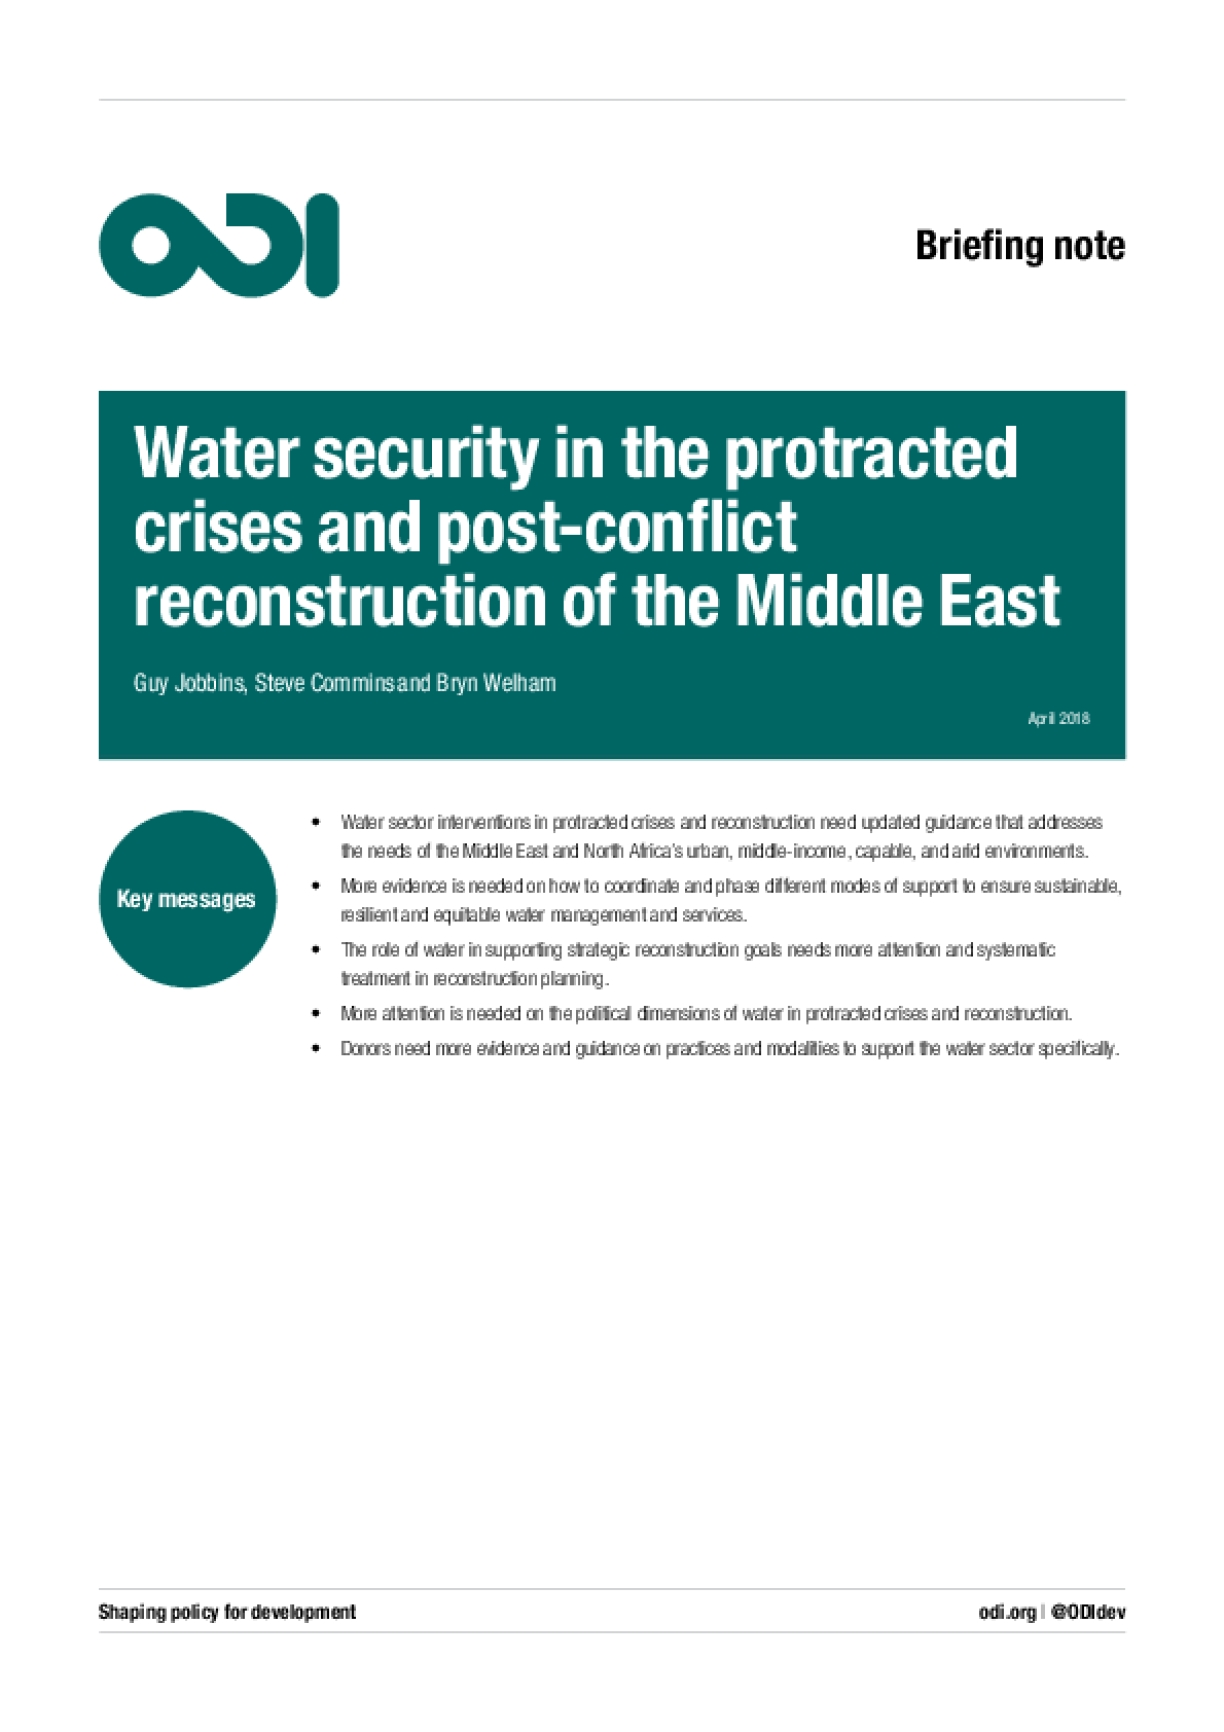 Water Security in the Protracted Crises and Post-Conflict Reconstruction of the Middle East